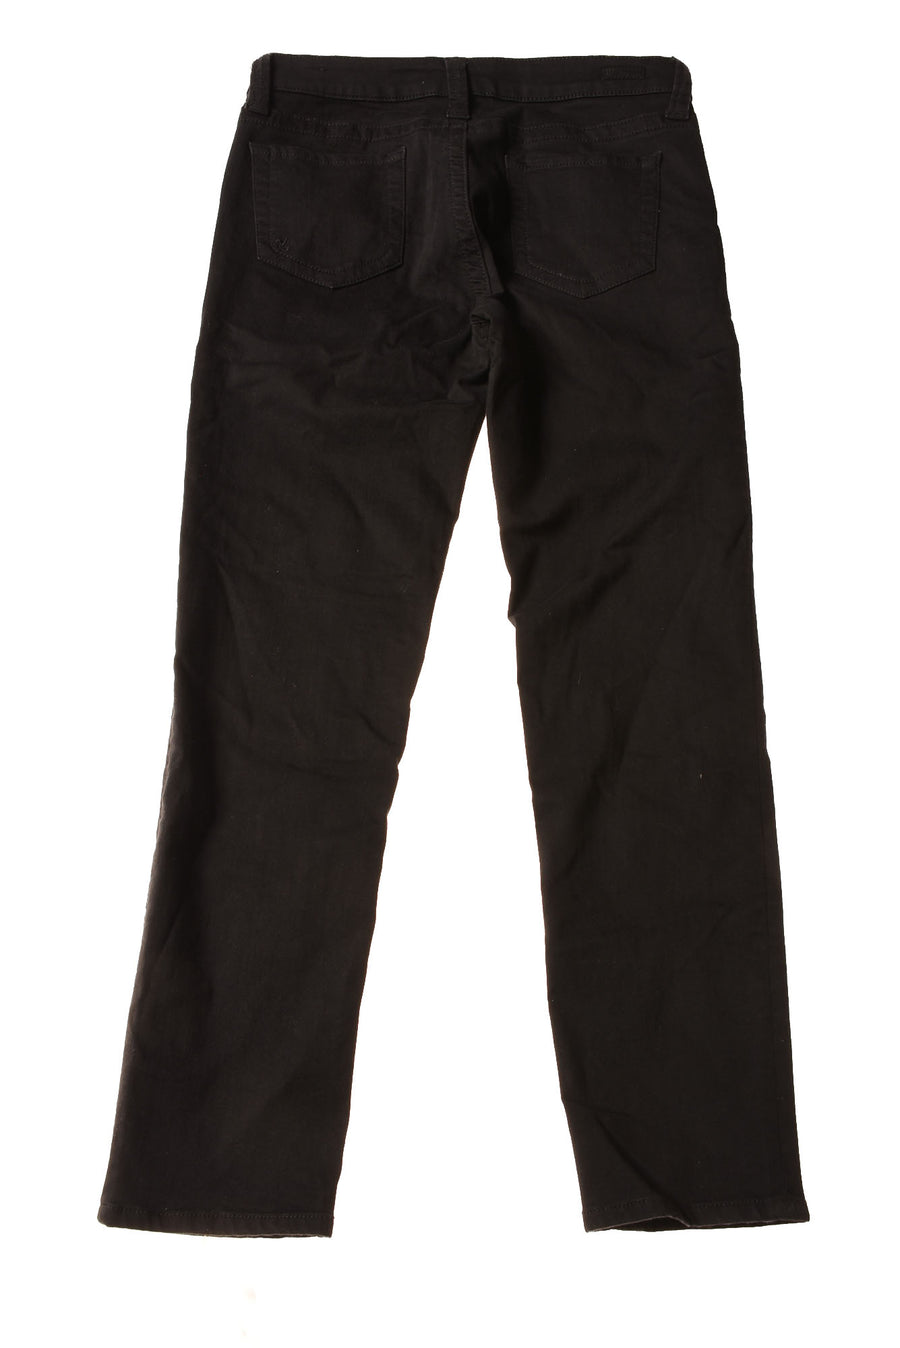 USED Kut Women's Jeans 8 Black